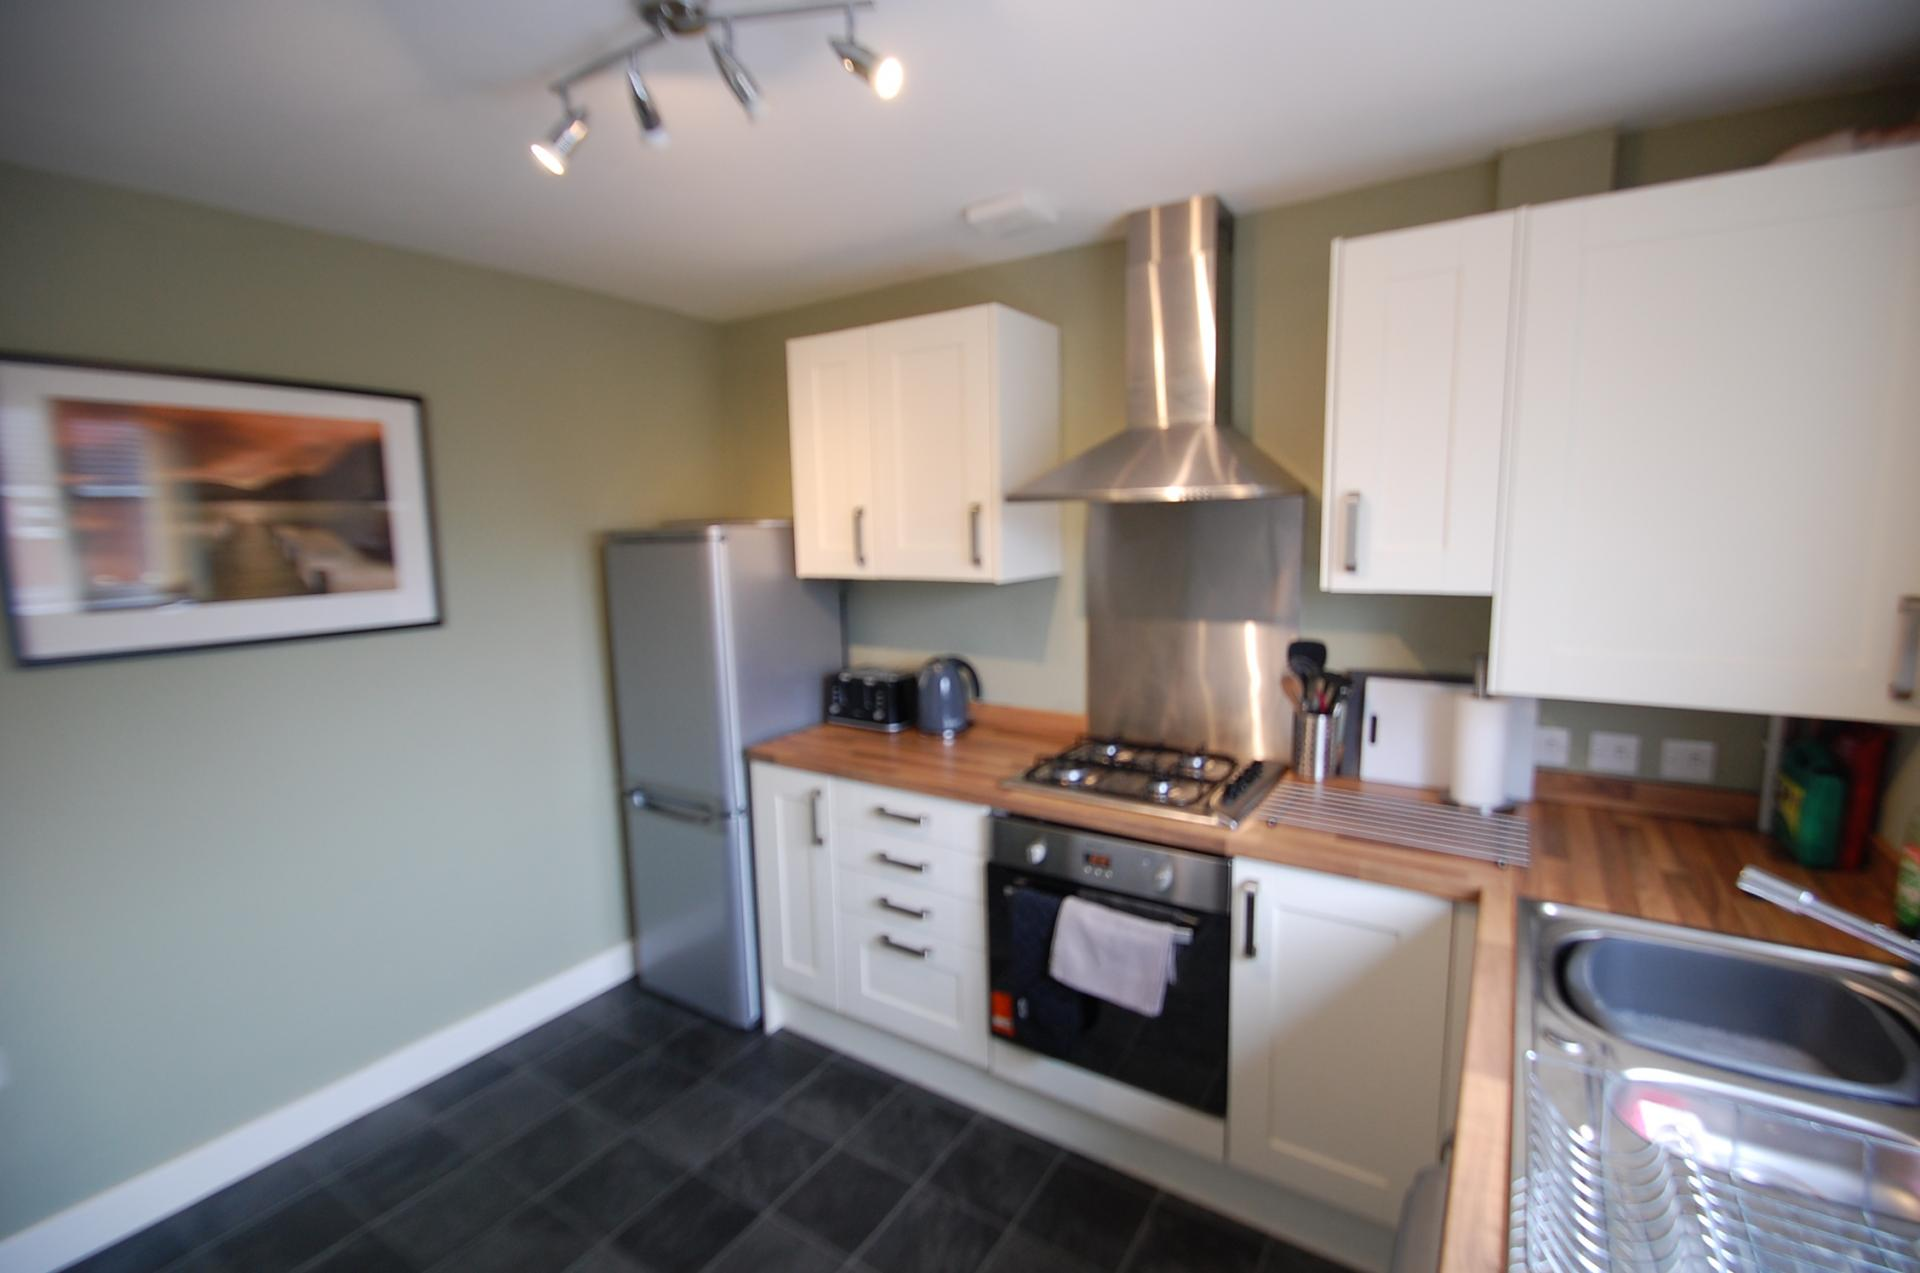 Equipped kitchen at Cosy Dragon @ Tanglewood House - Citybase Apartments